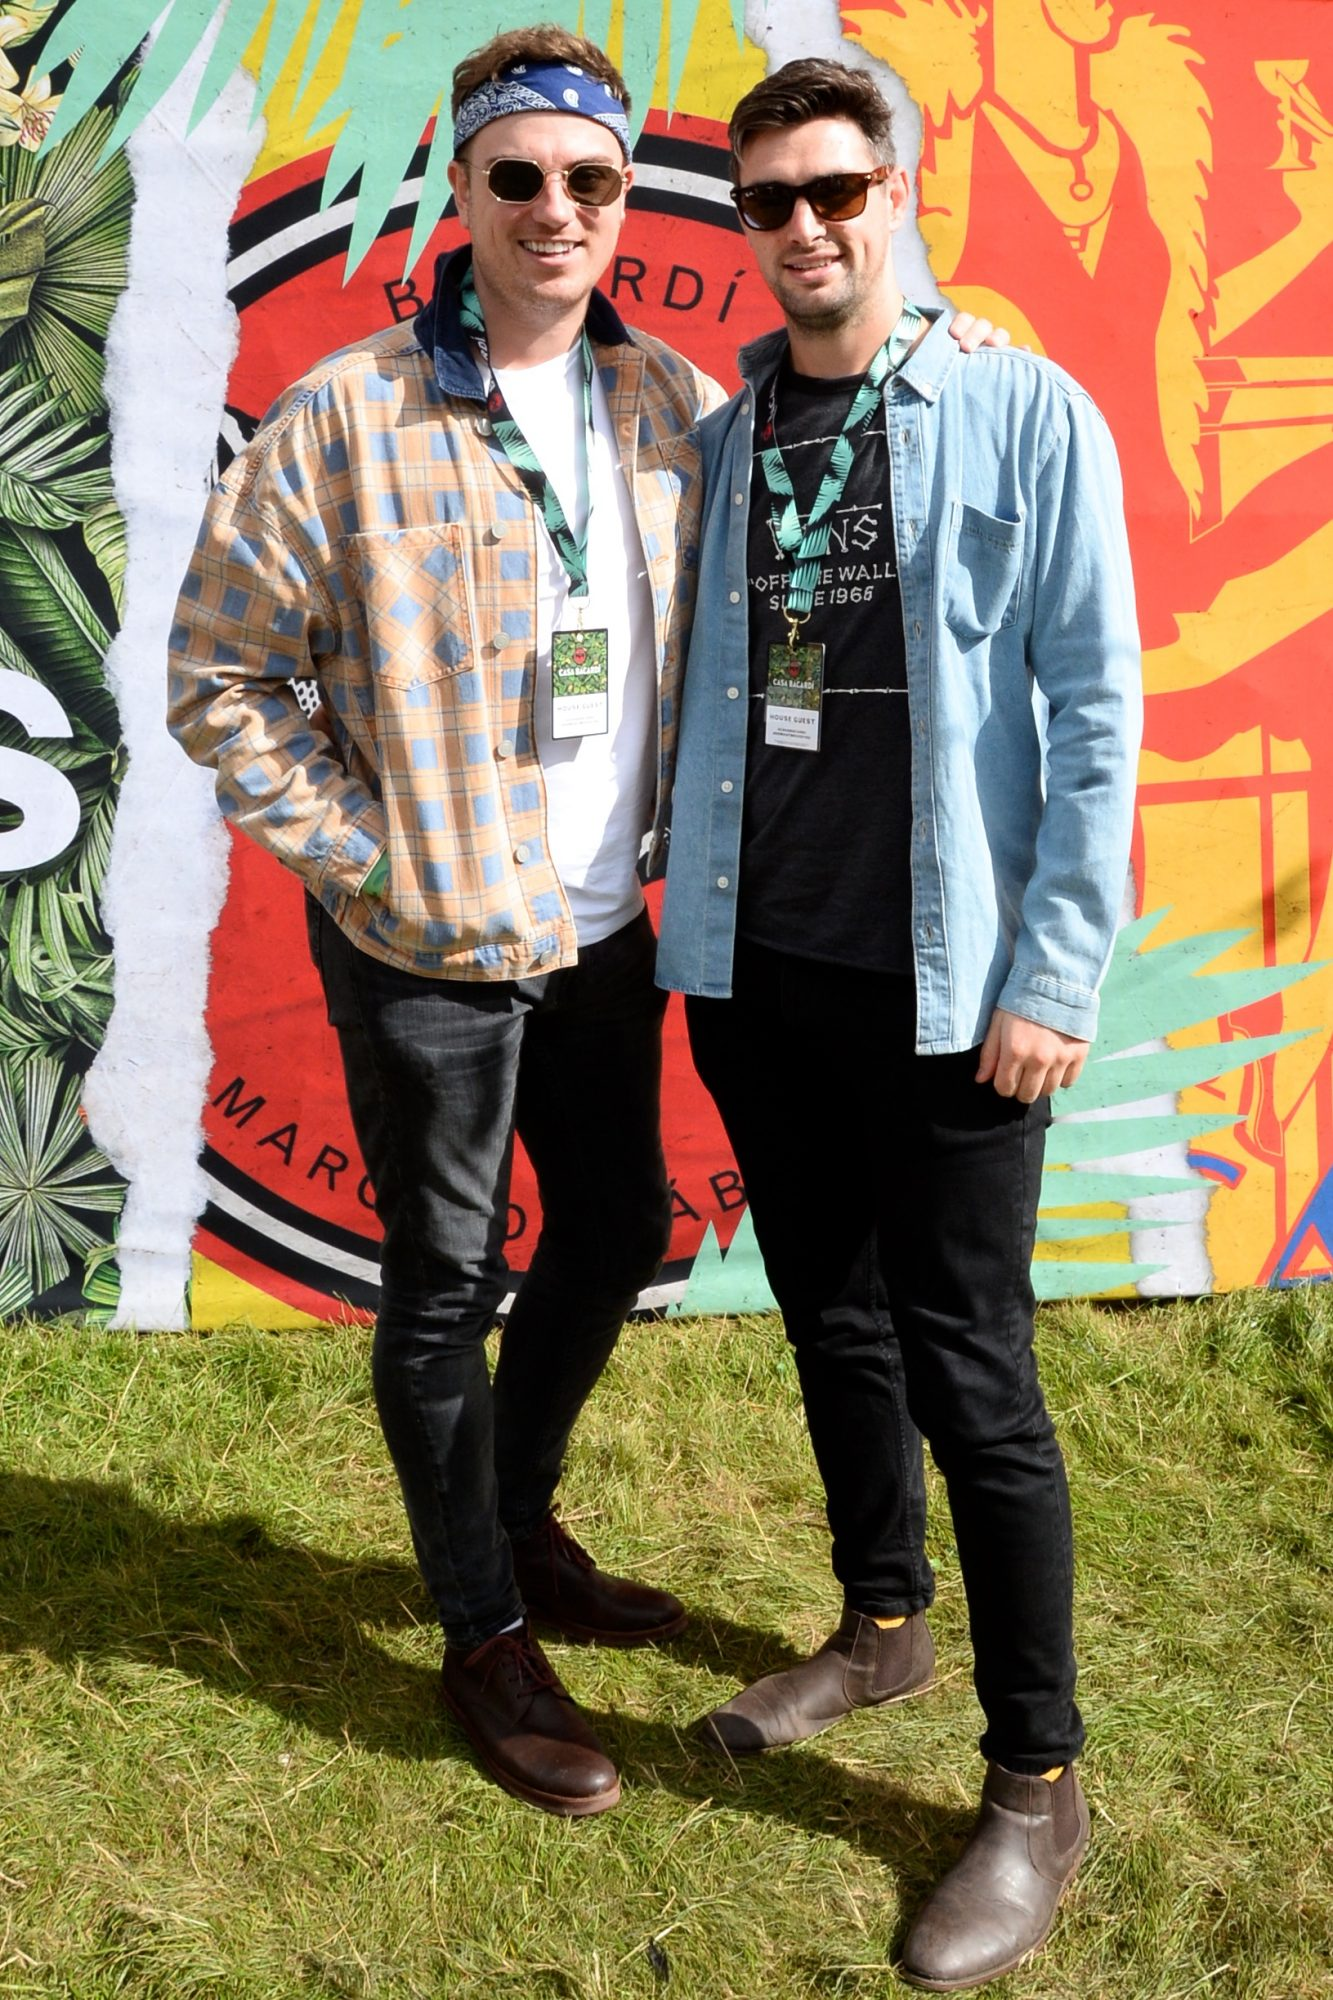 31st August 2019. Alan Cawley and Jamie Lynch pictured at Casa Bacardi on day 2 of Electric Picnic. Photo: Justin Farrelly.